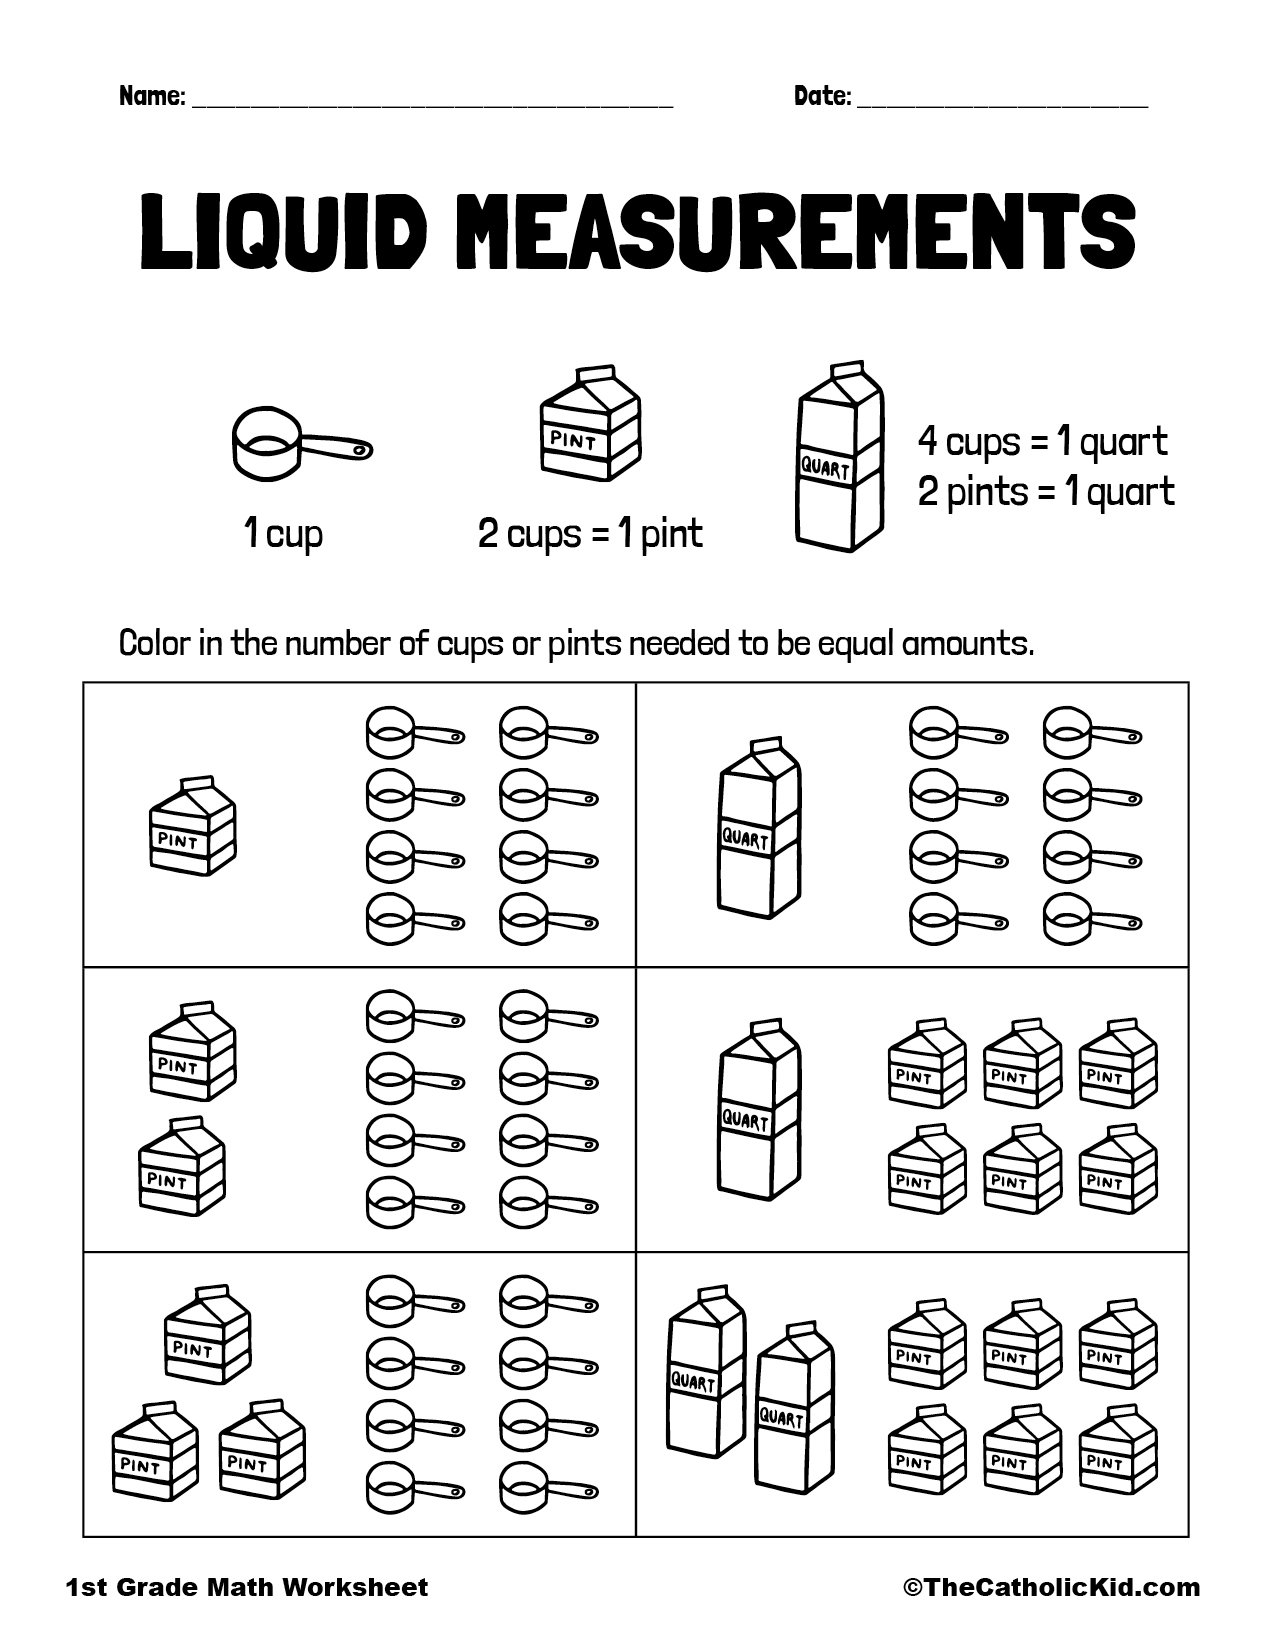 1st Grade Math Catholic Themed Worksheet Measuring Liquids